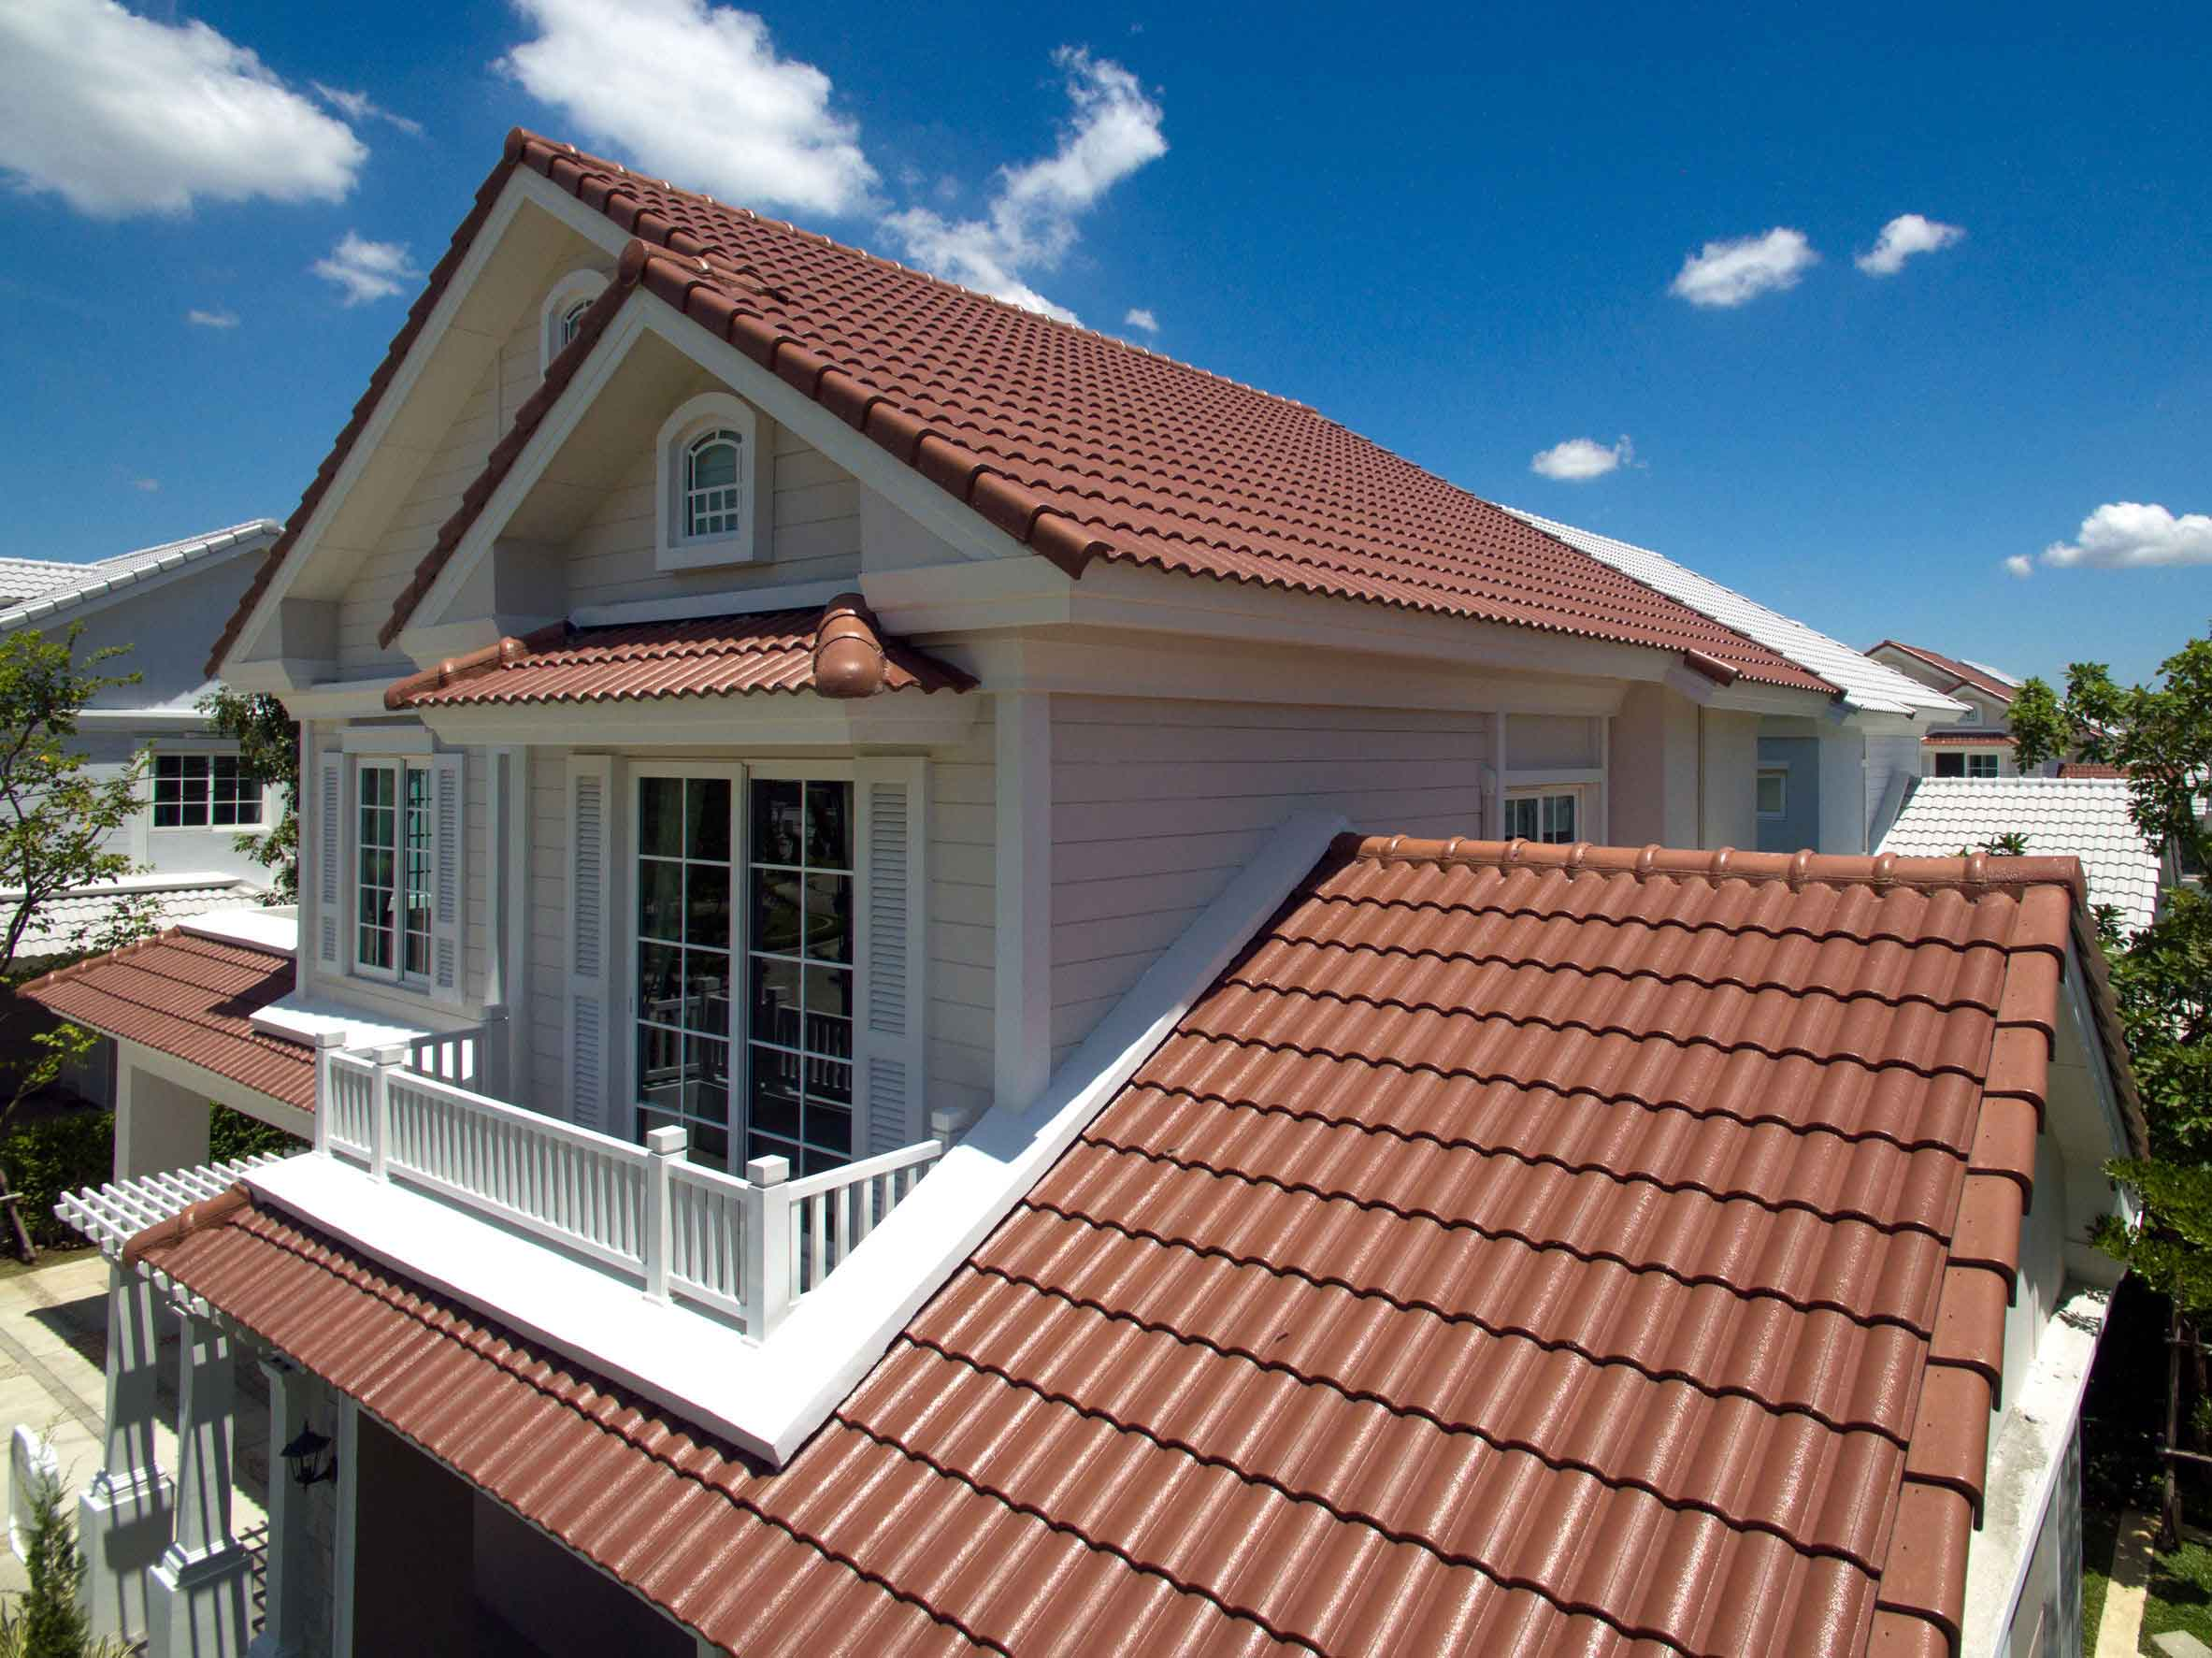 Southwest Ranches FL Roofing